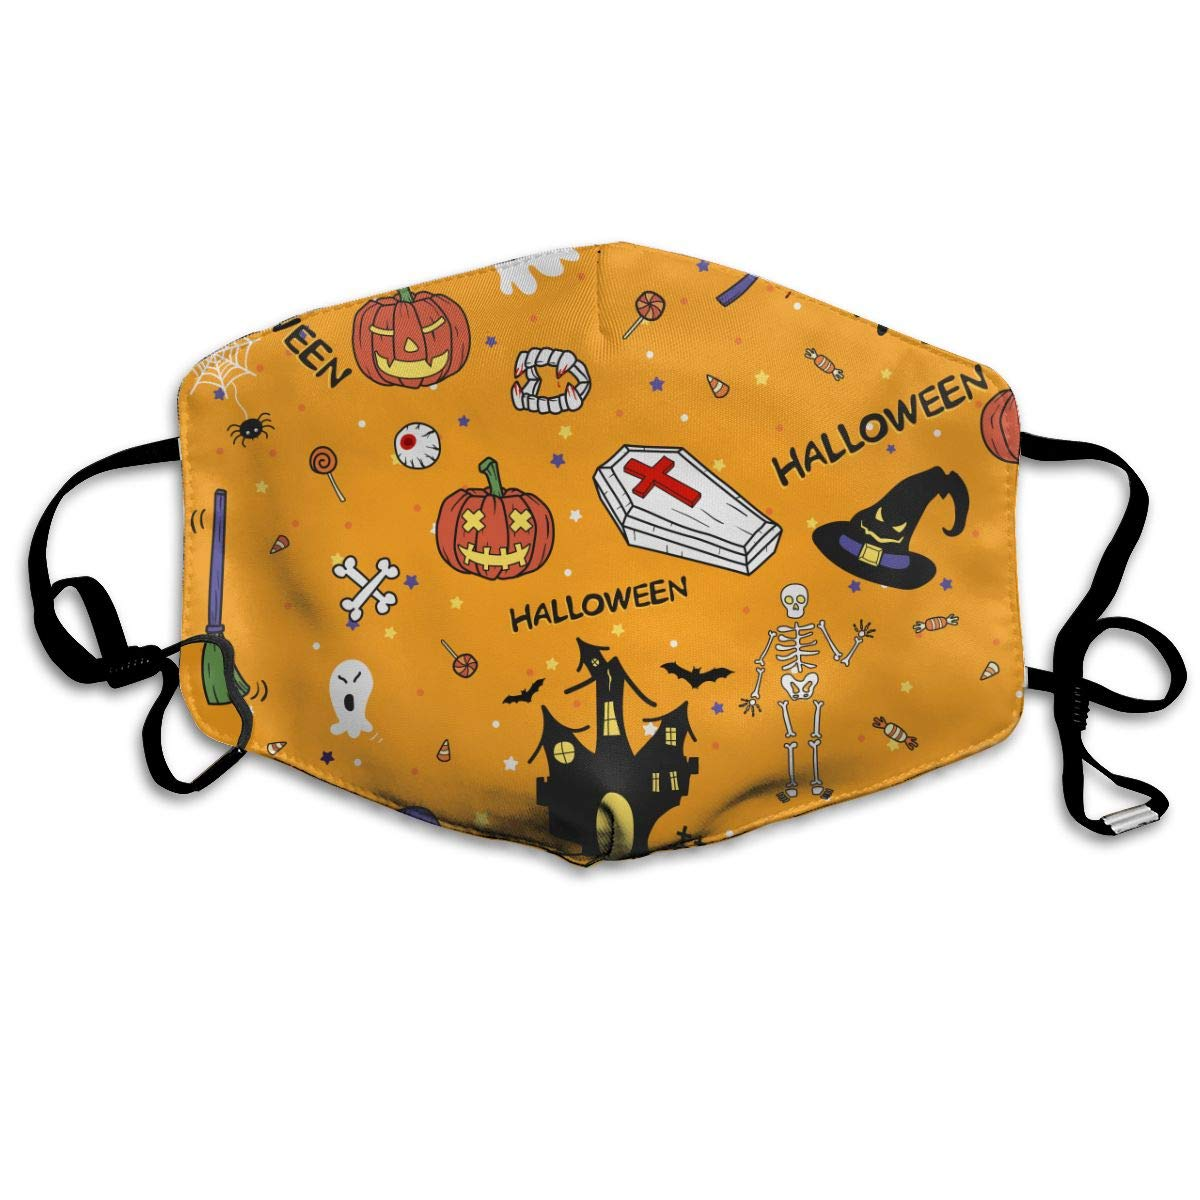 Unisex Happy Halloween Doodles Hand Drawn Printed Cotton Mouth-Masks Face Mask Polyester Anti-dust Masks